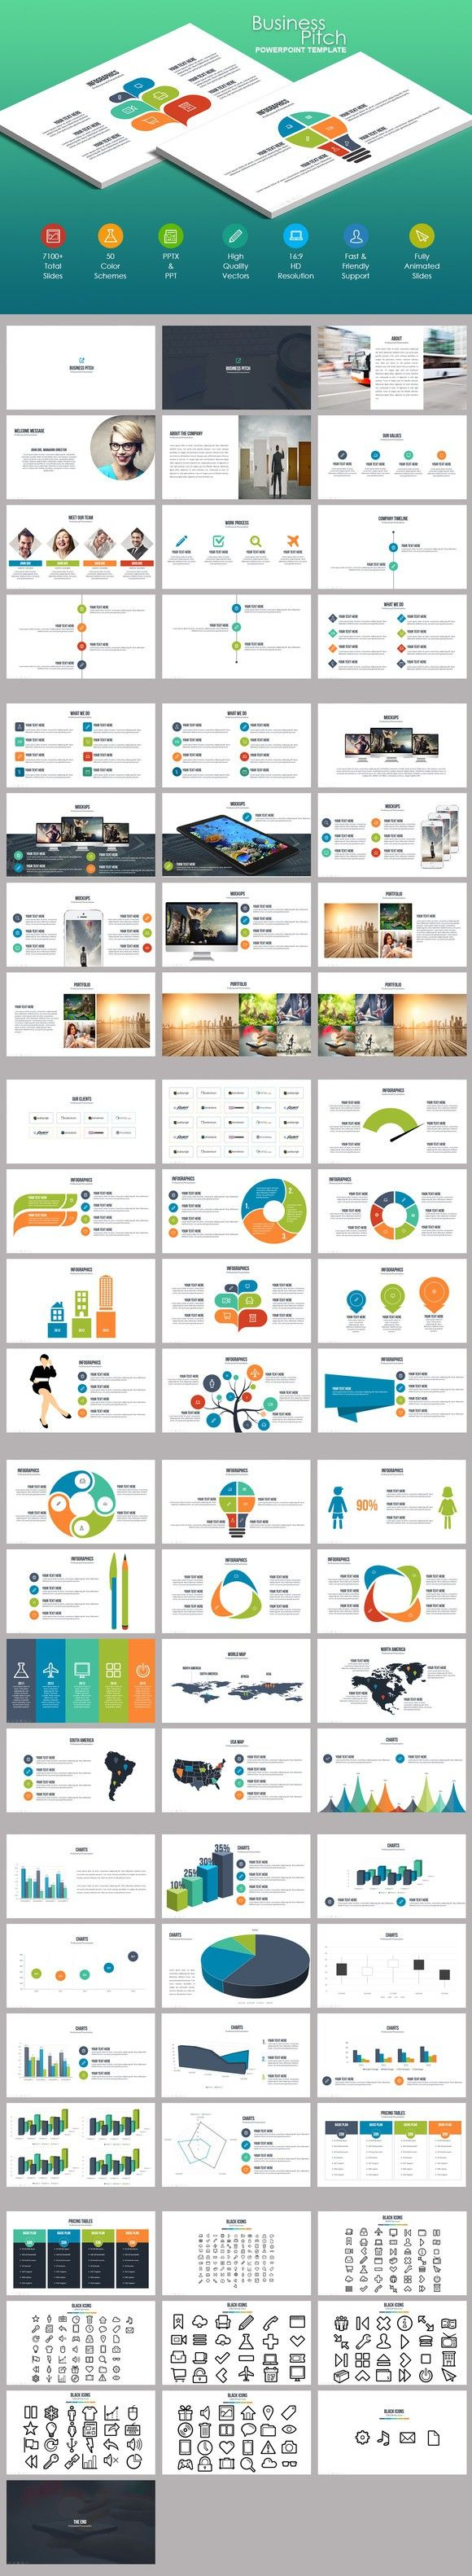 business infographic business pitch powerpoint template best